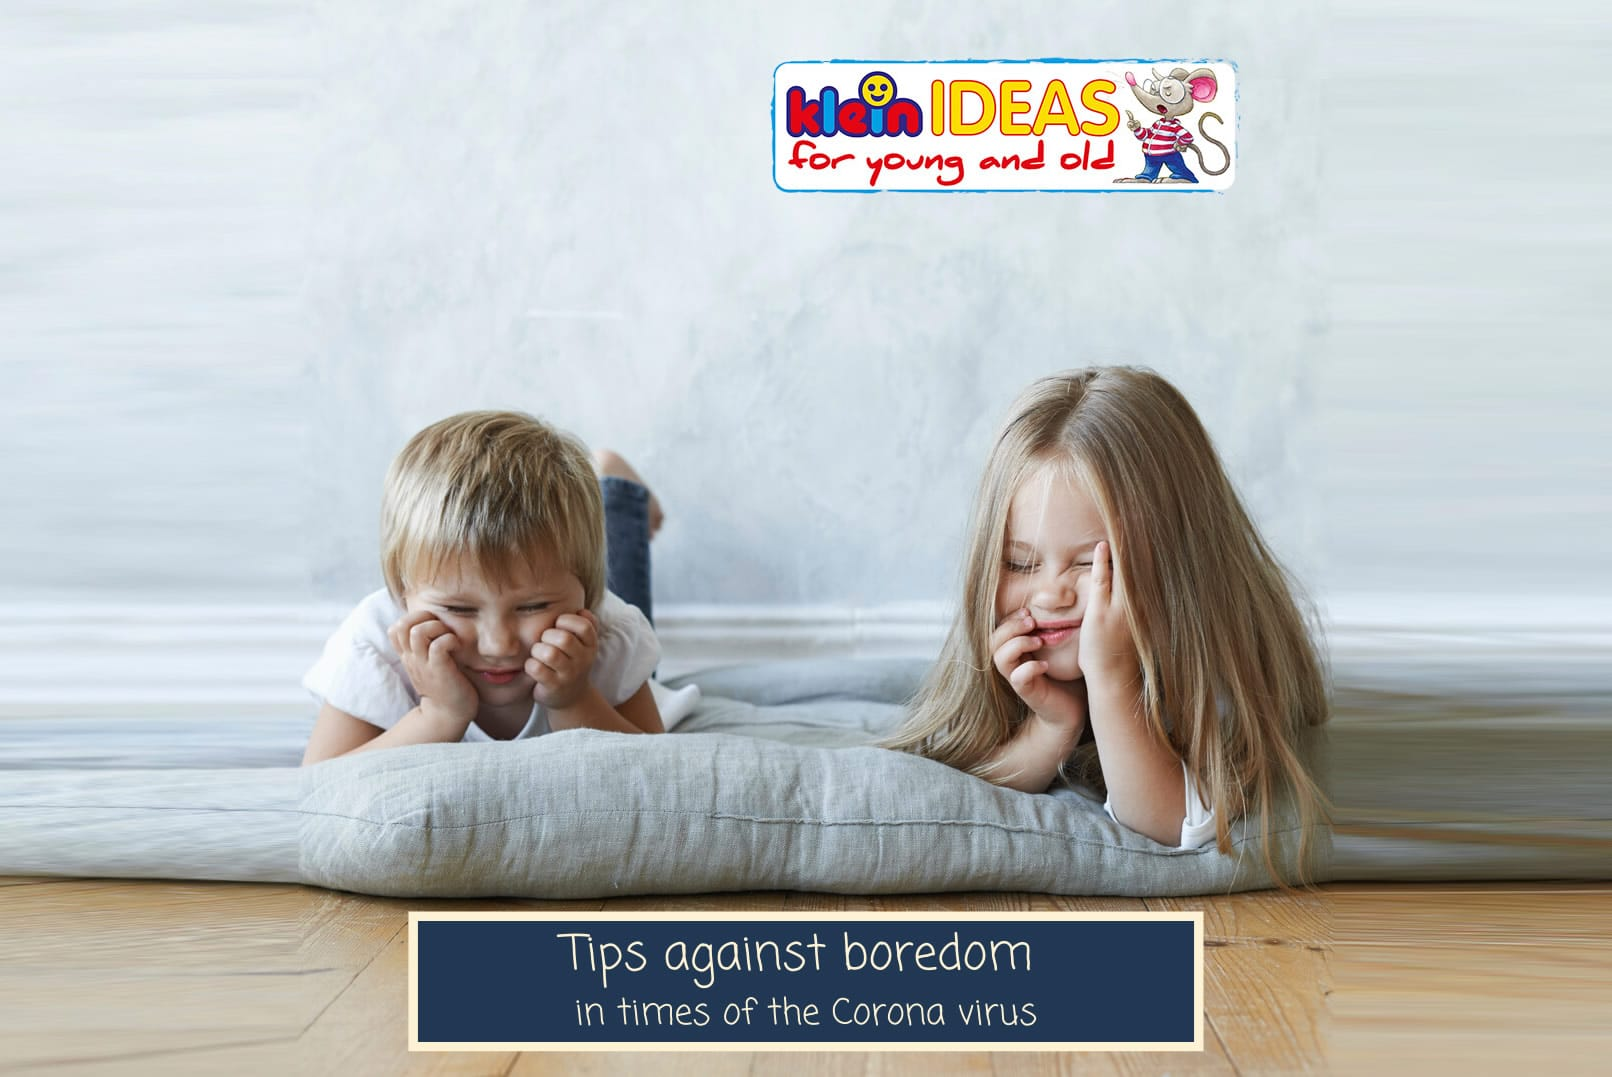 Tips against boredom in times of the Corona virus